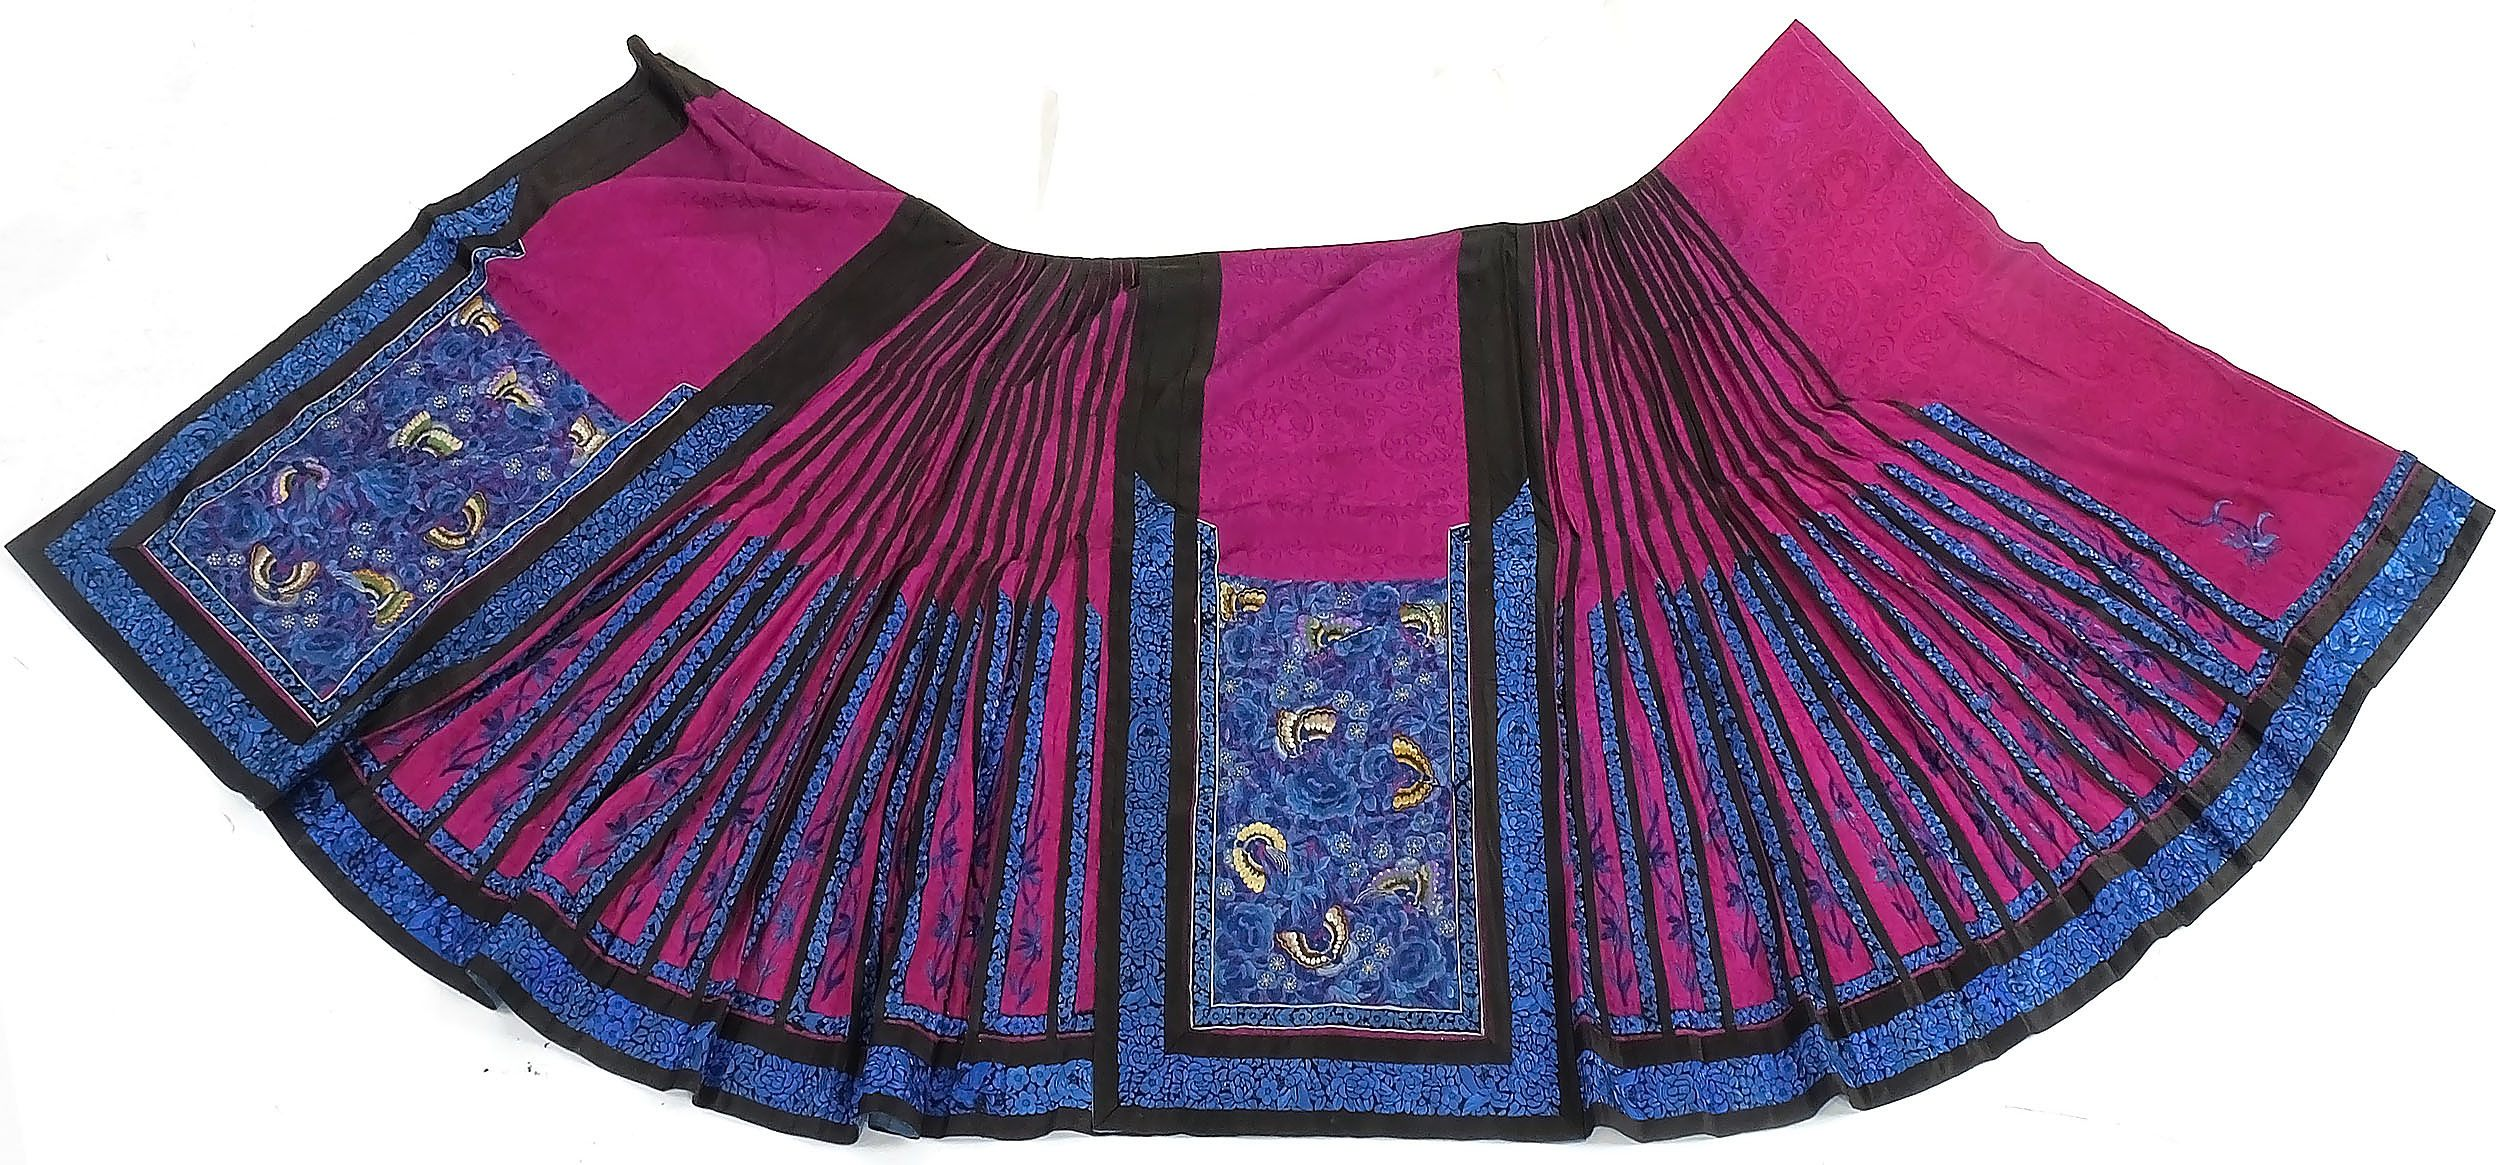 'Chinese Embroidered Fuchsia Colour Damask Silk Skirt, Late 19th Century'